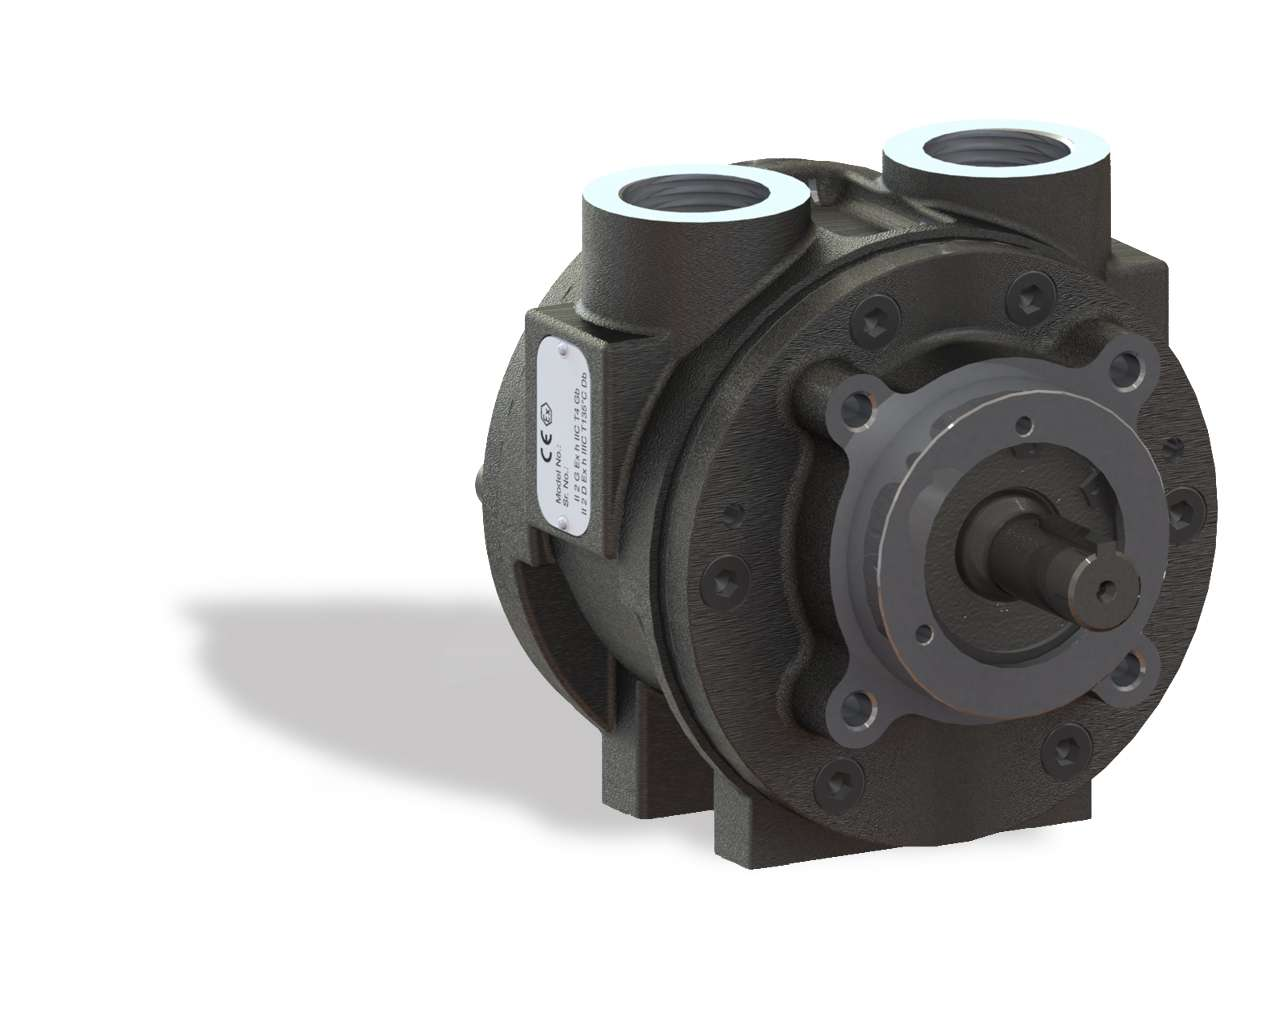 Stainless Steel Air Operated Diaphragm Pump